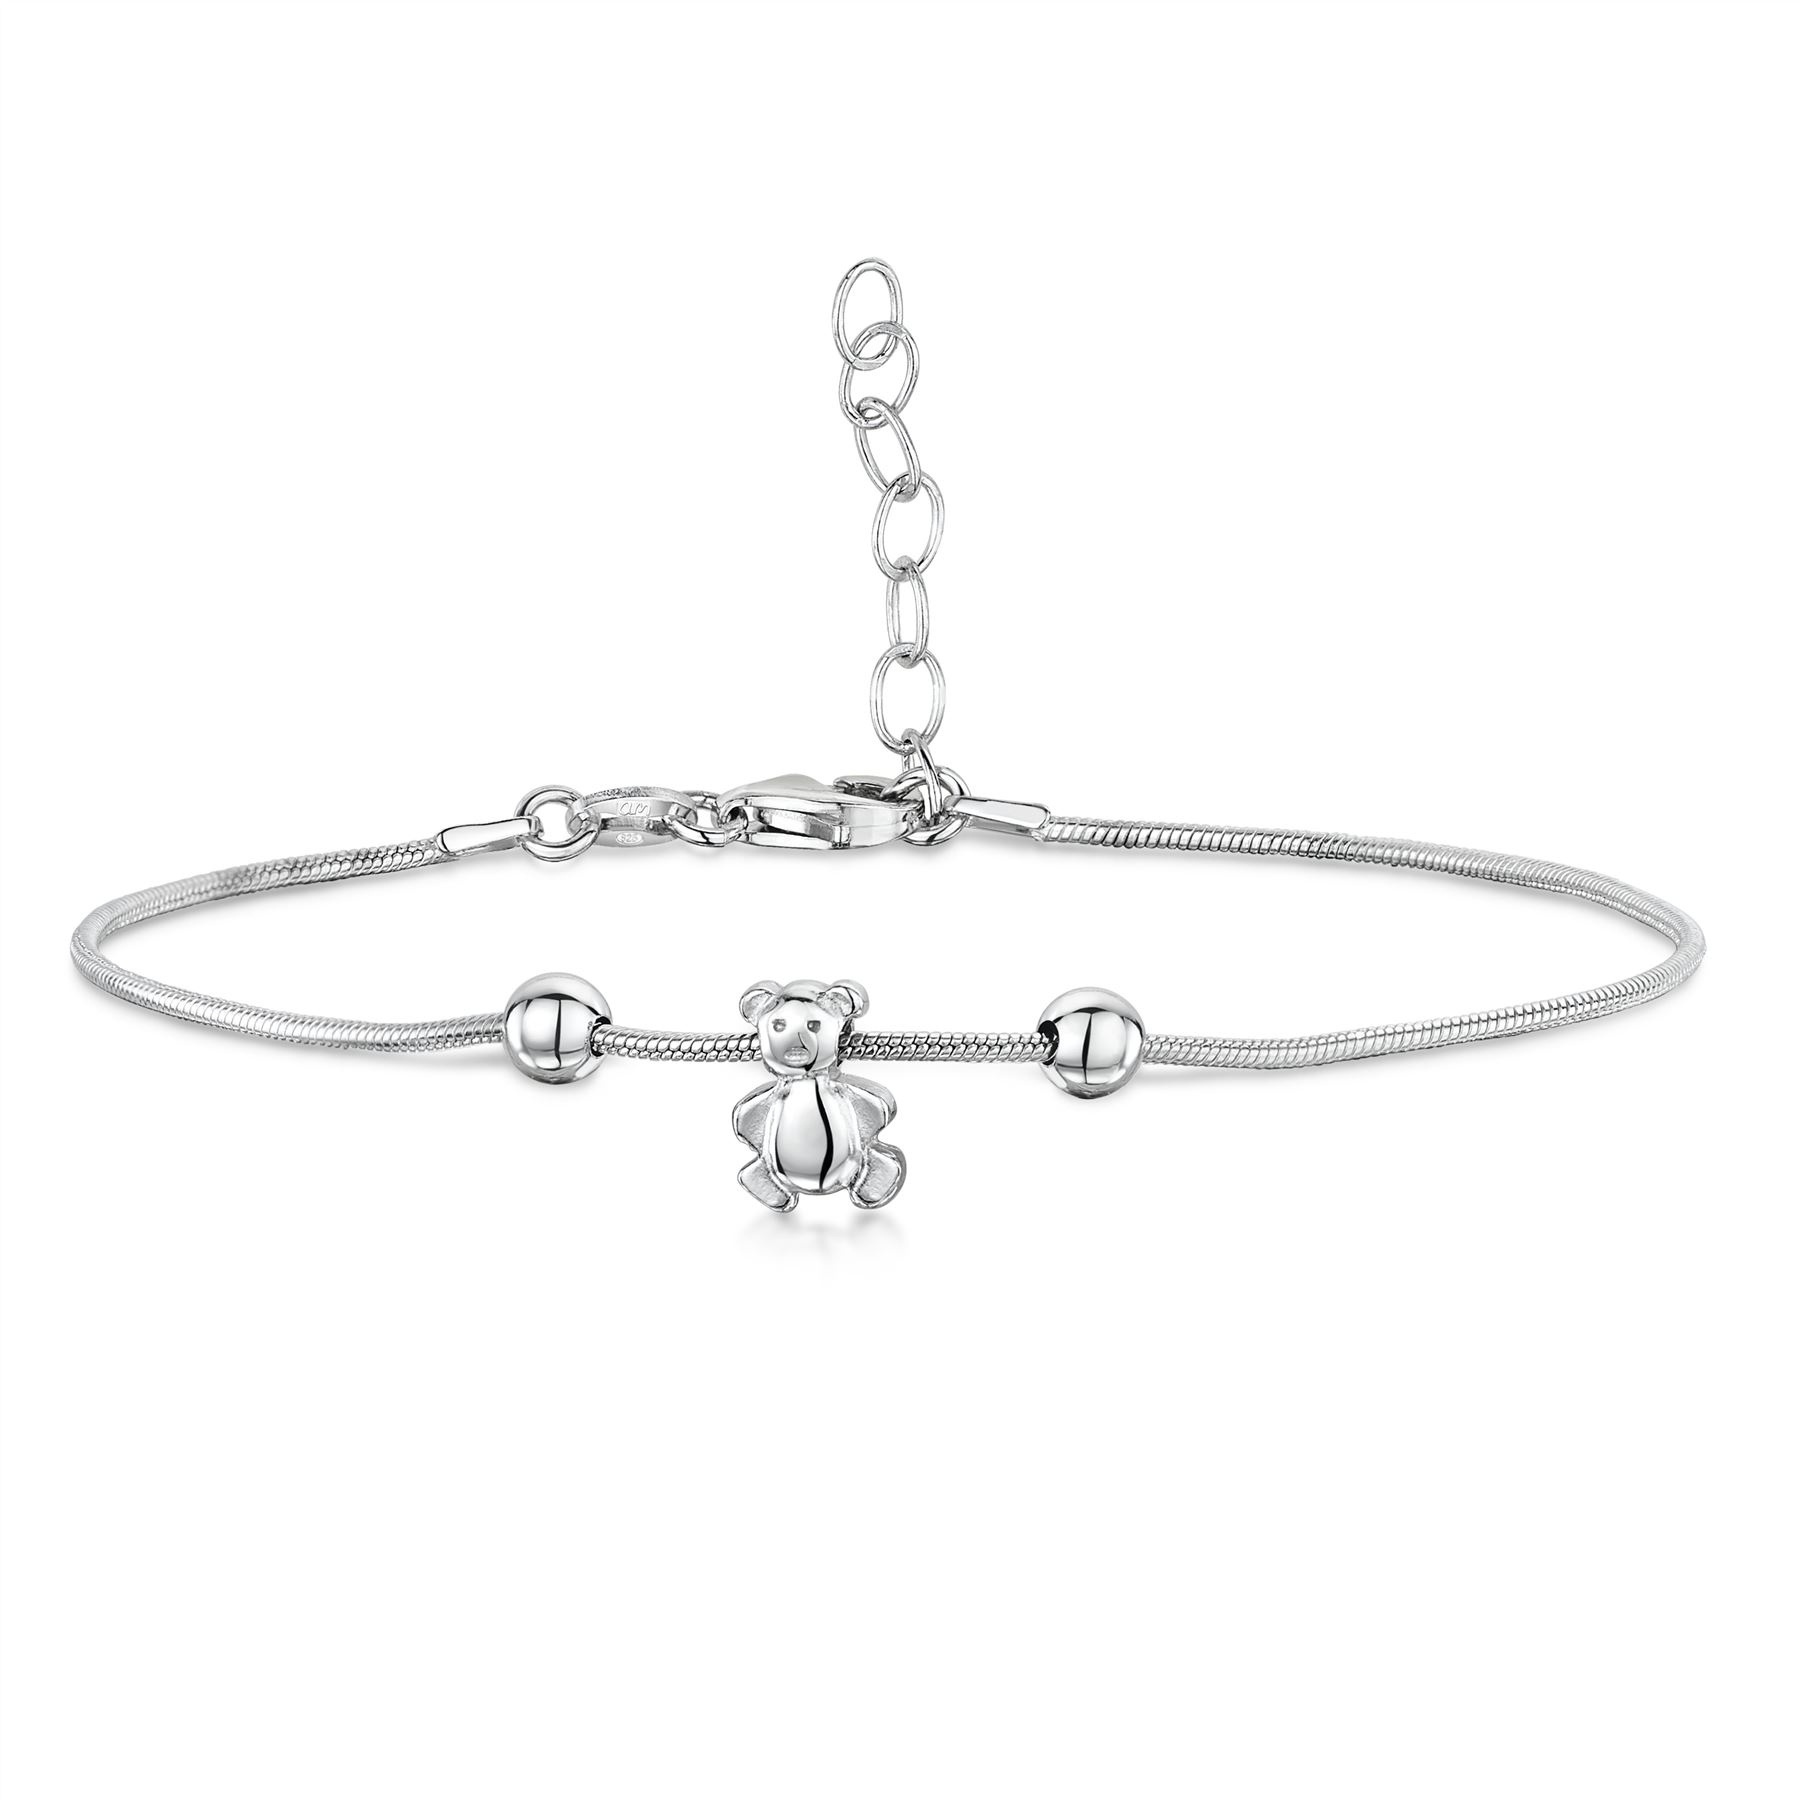 Amberta-Jewelry-925-Sterling-Silver-Adjustable-Anklet-for-Women-Made-in-Italy miniature 12